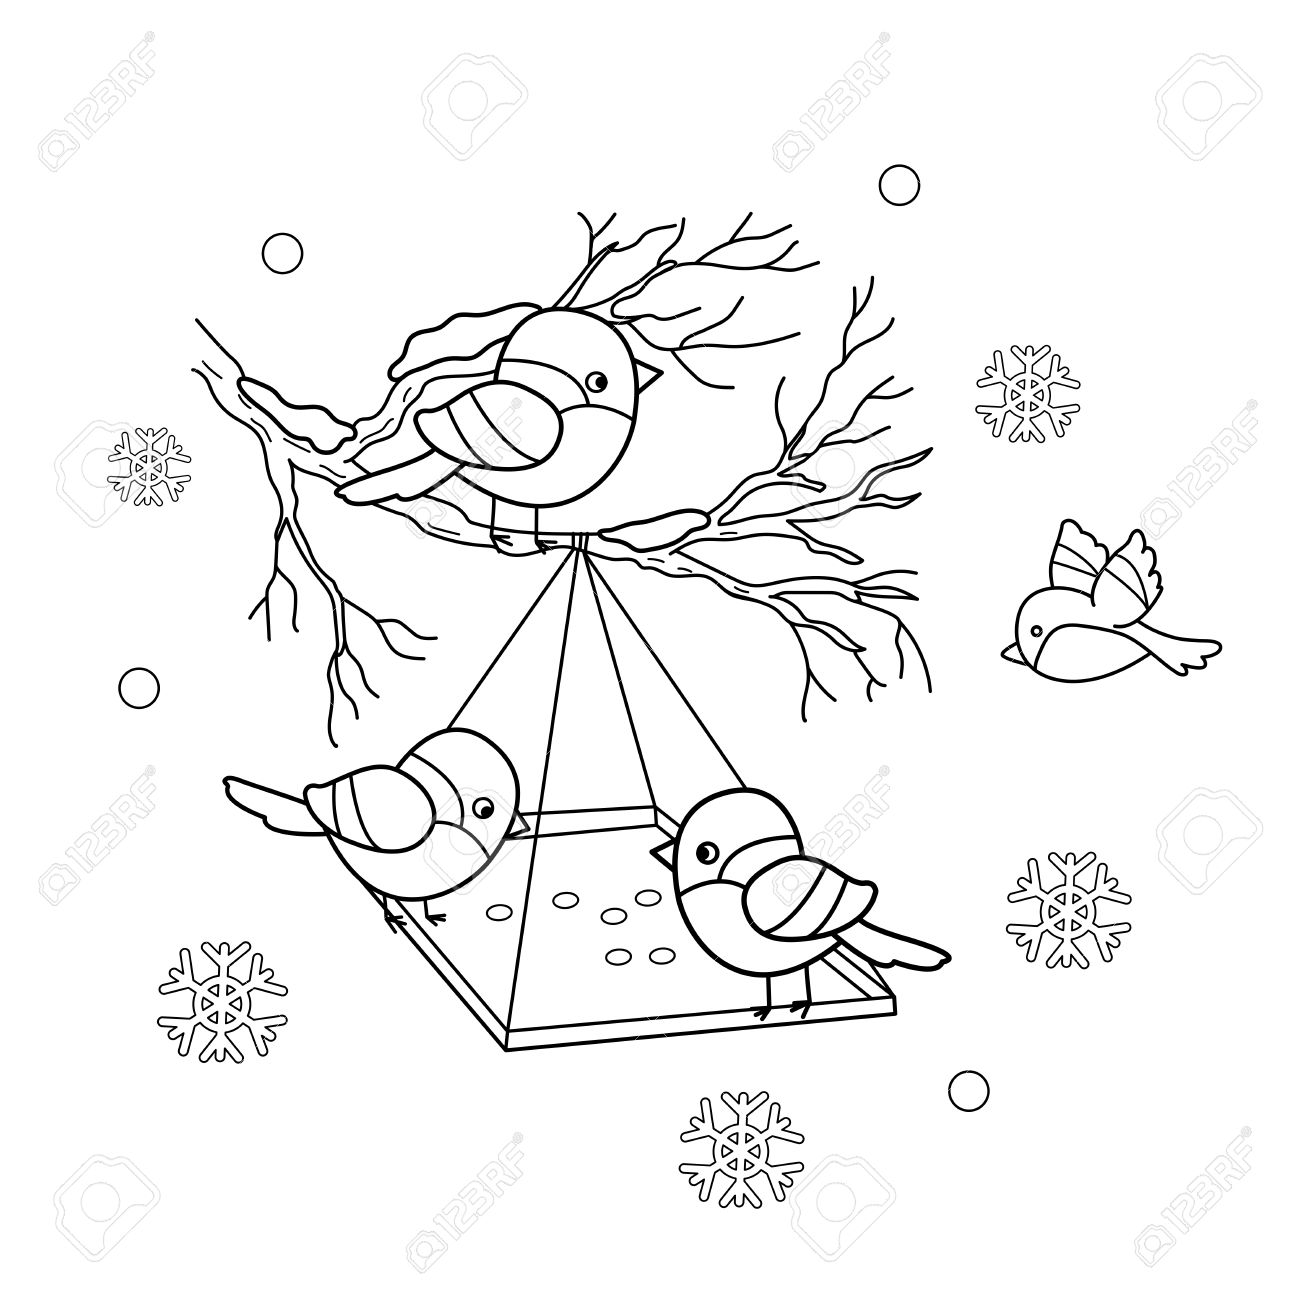 1300x1300 Coloring Page Outline Of Cartoon Birds In The Winter. Bird Feeder